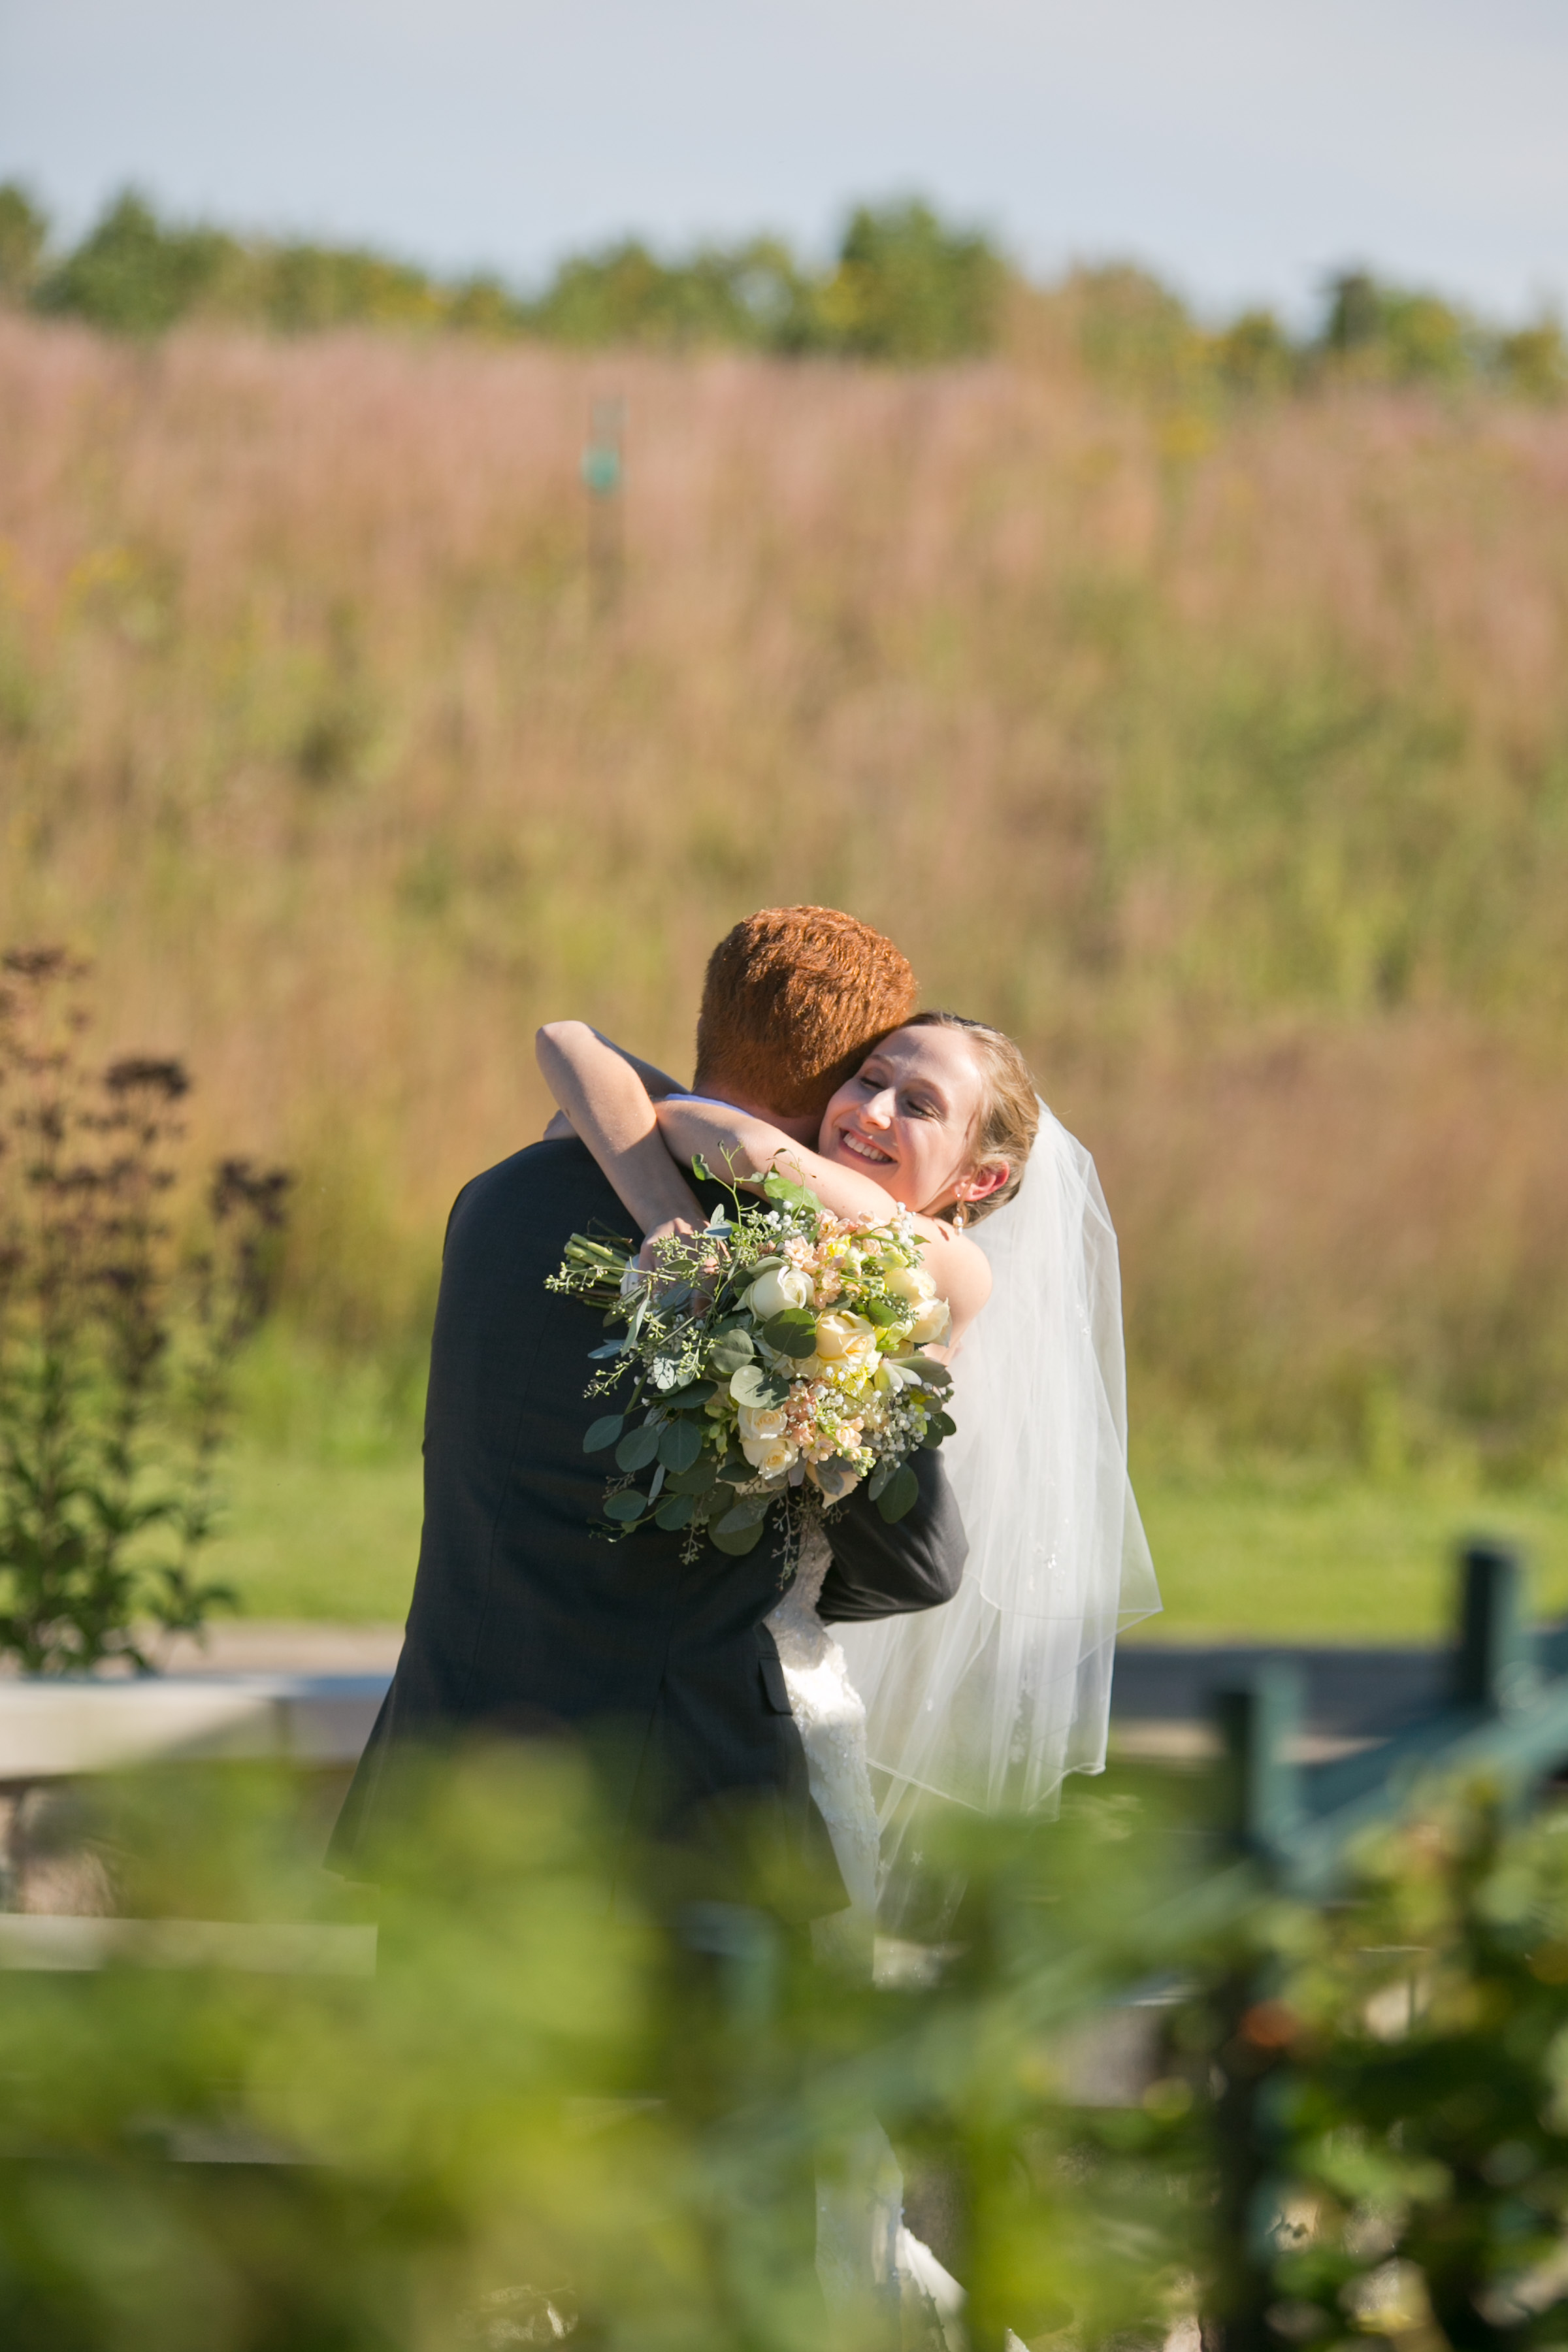 Anne of Green Gables engagement photos